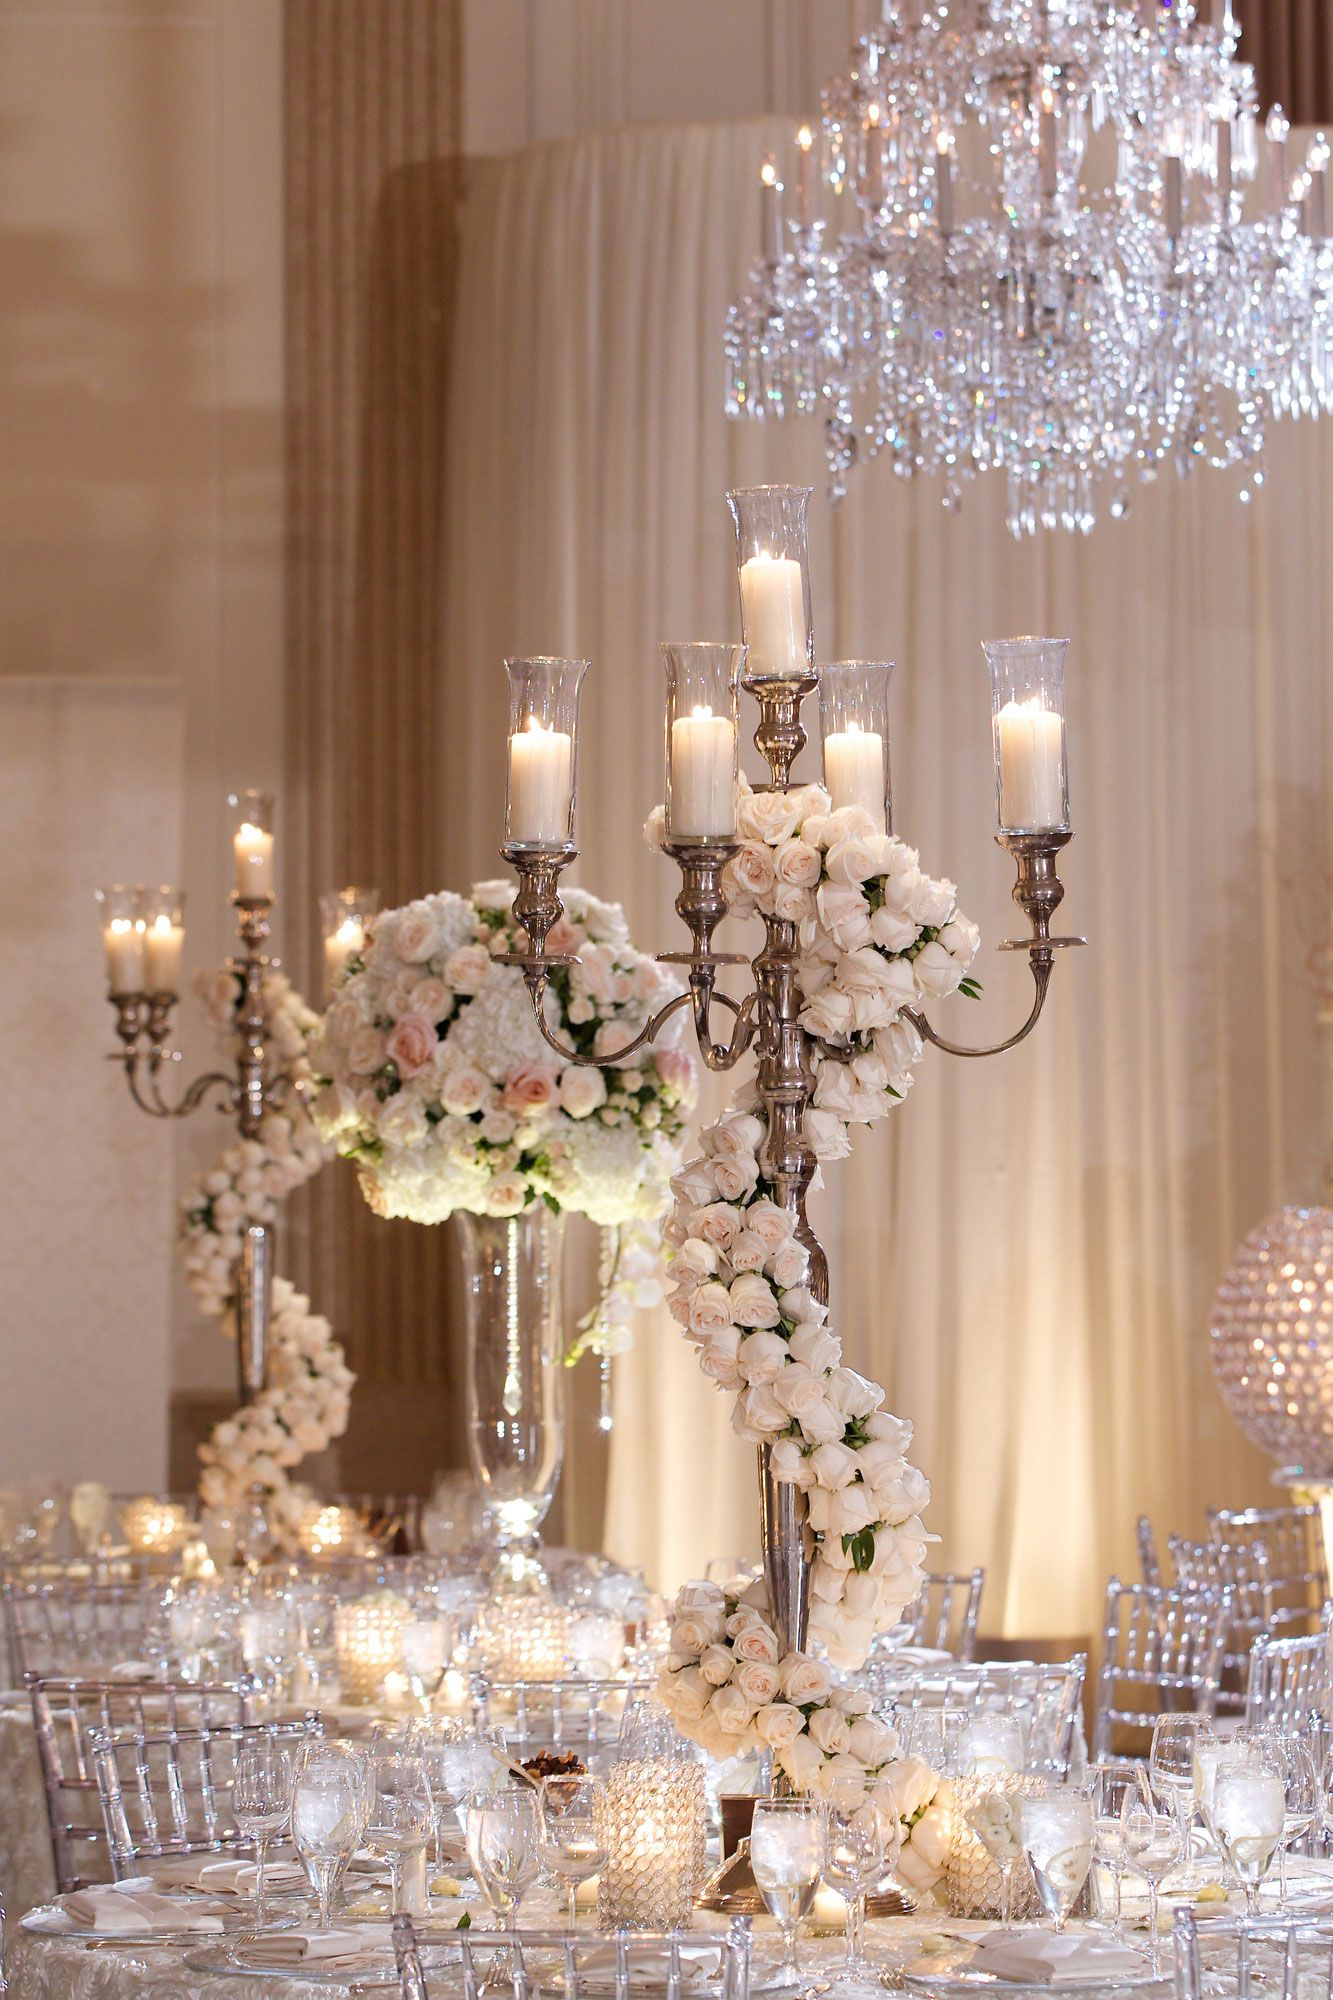 Dress up a candelabra centerpiece with a garland of for Nachttischlampe vintage